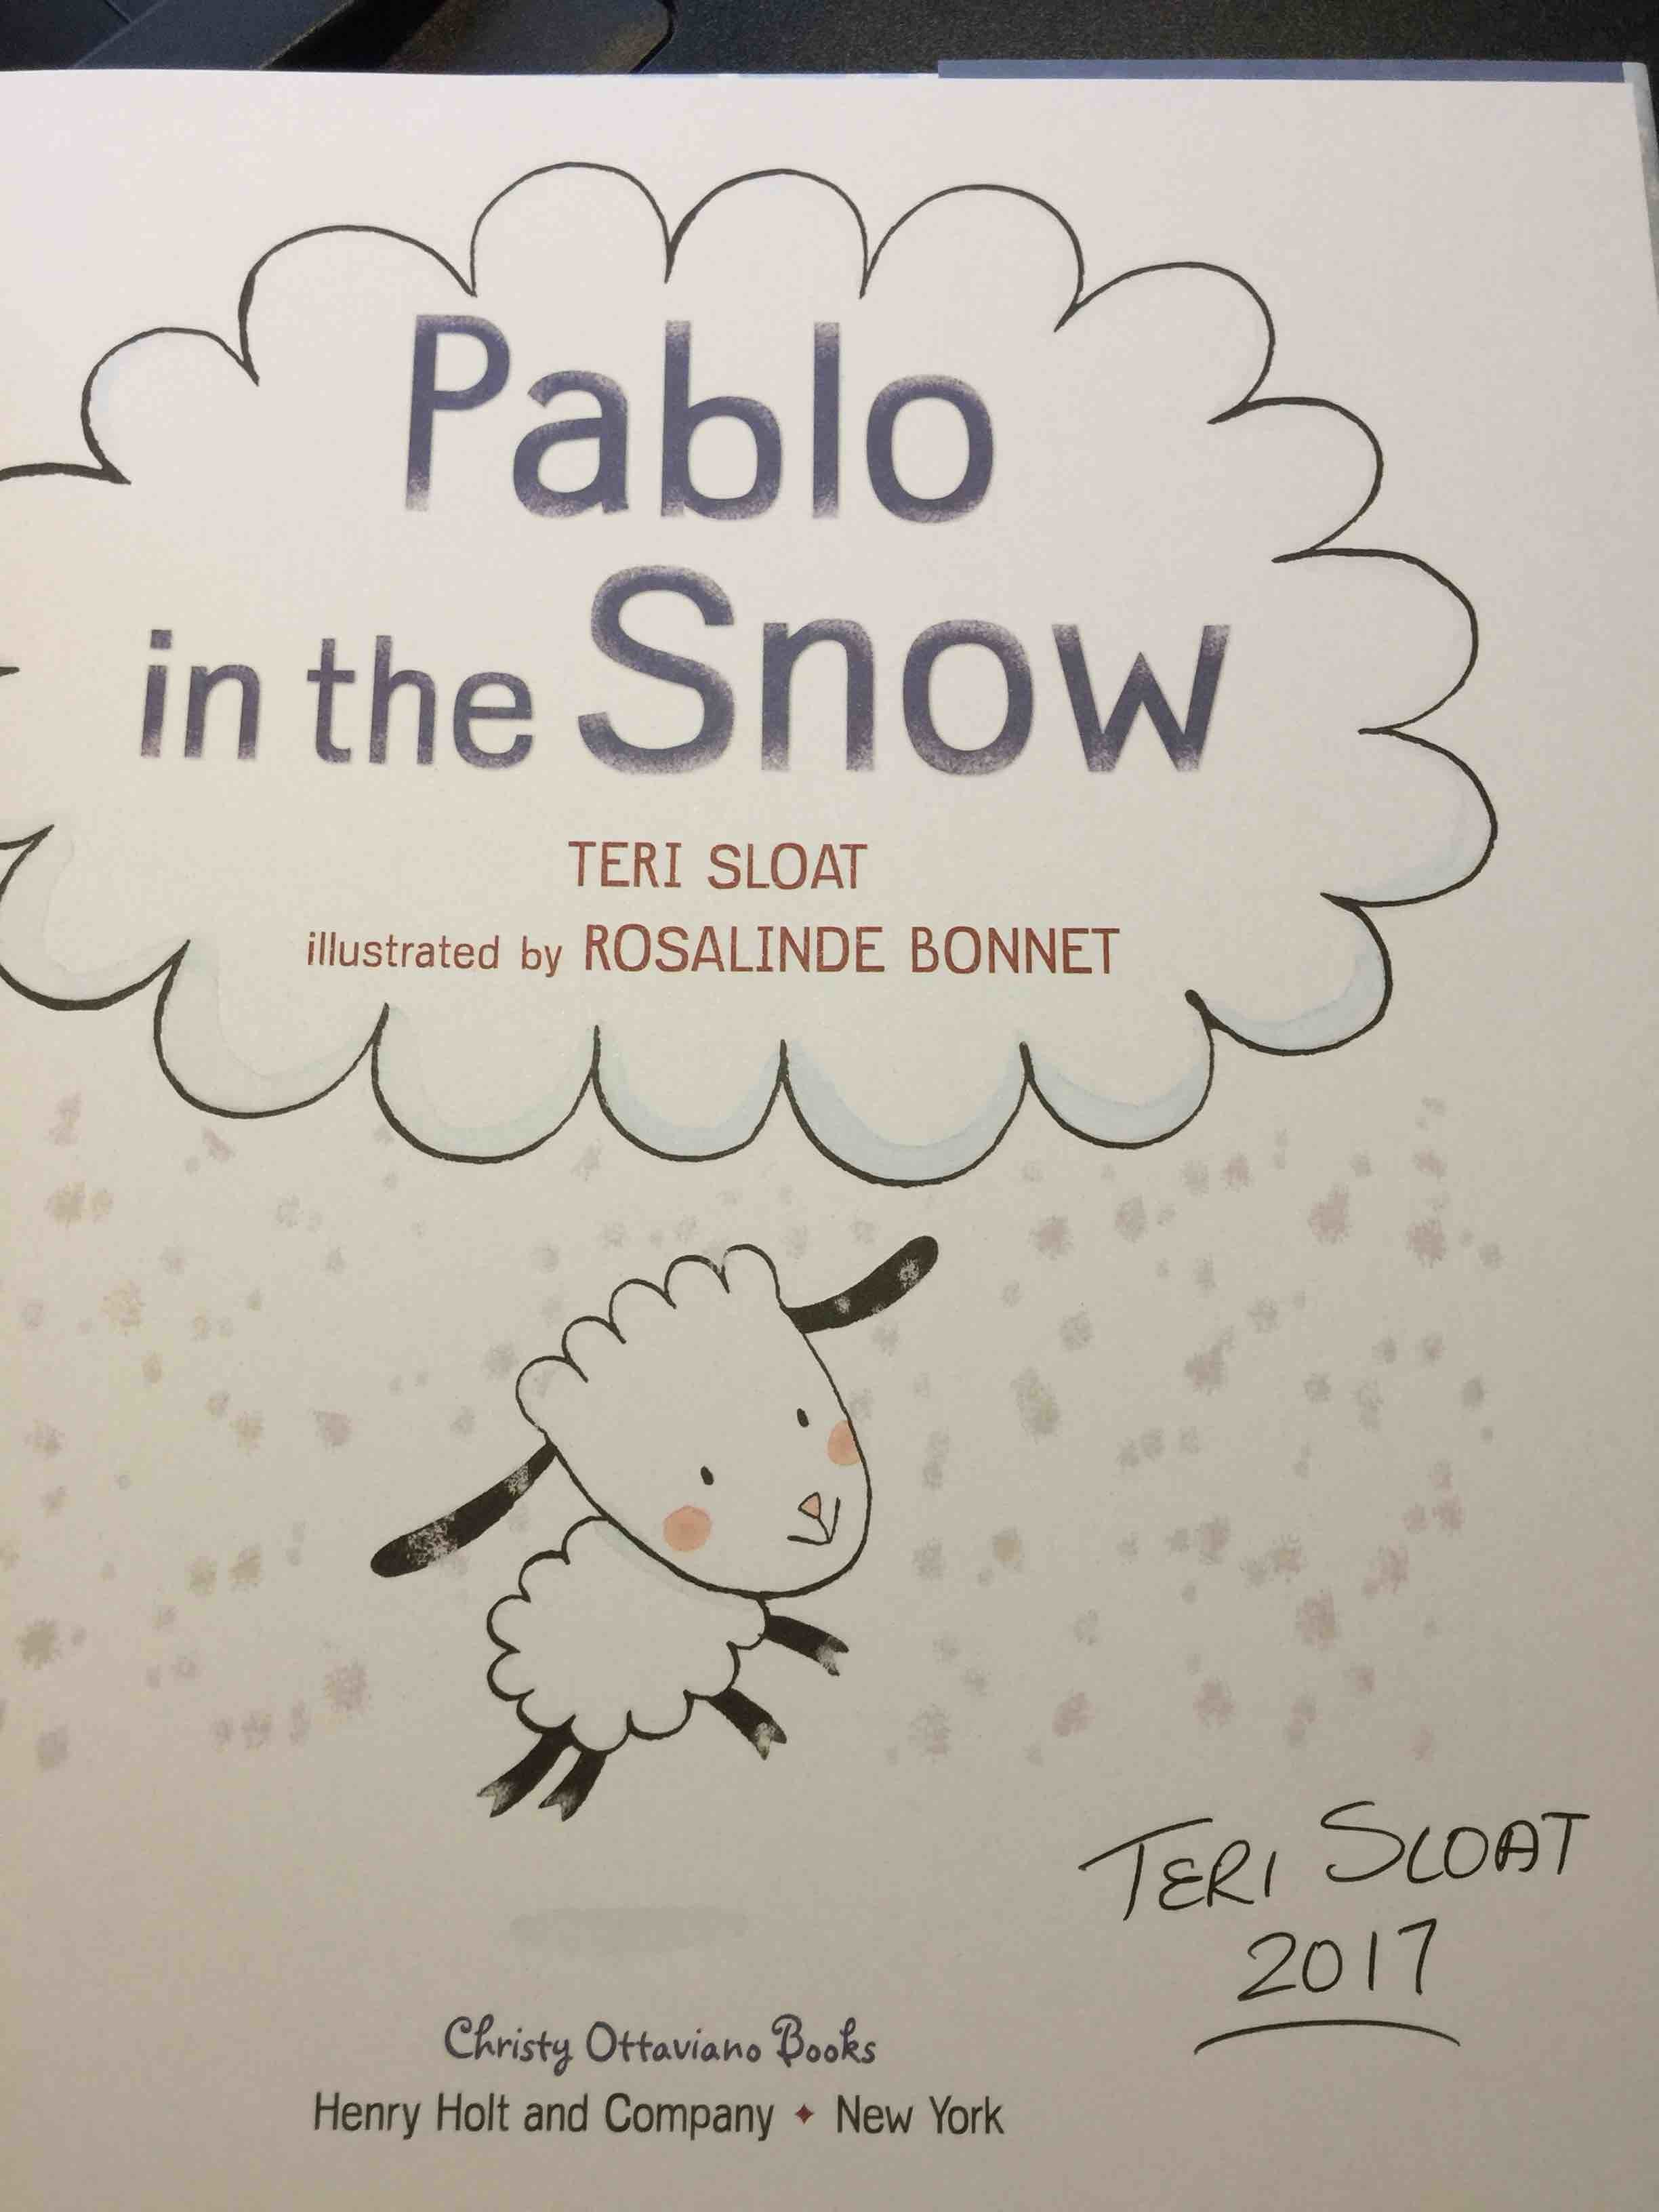 SLOAT, TERI. ILLUSTRATED BY ROSALINDE BONNET. - PABLO IN THE SNOW.